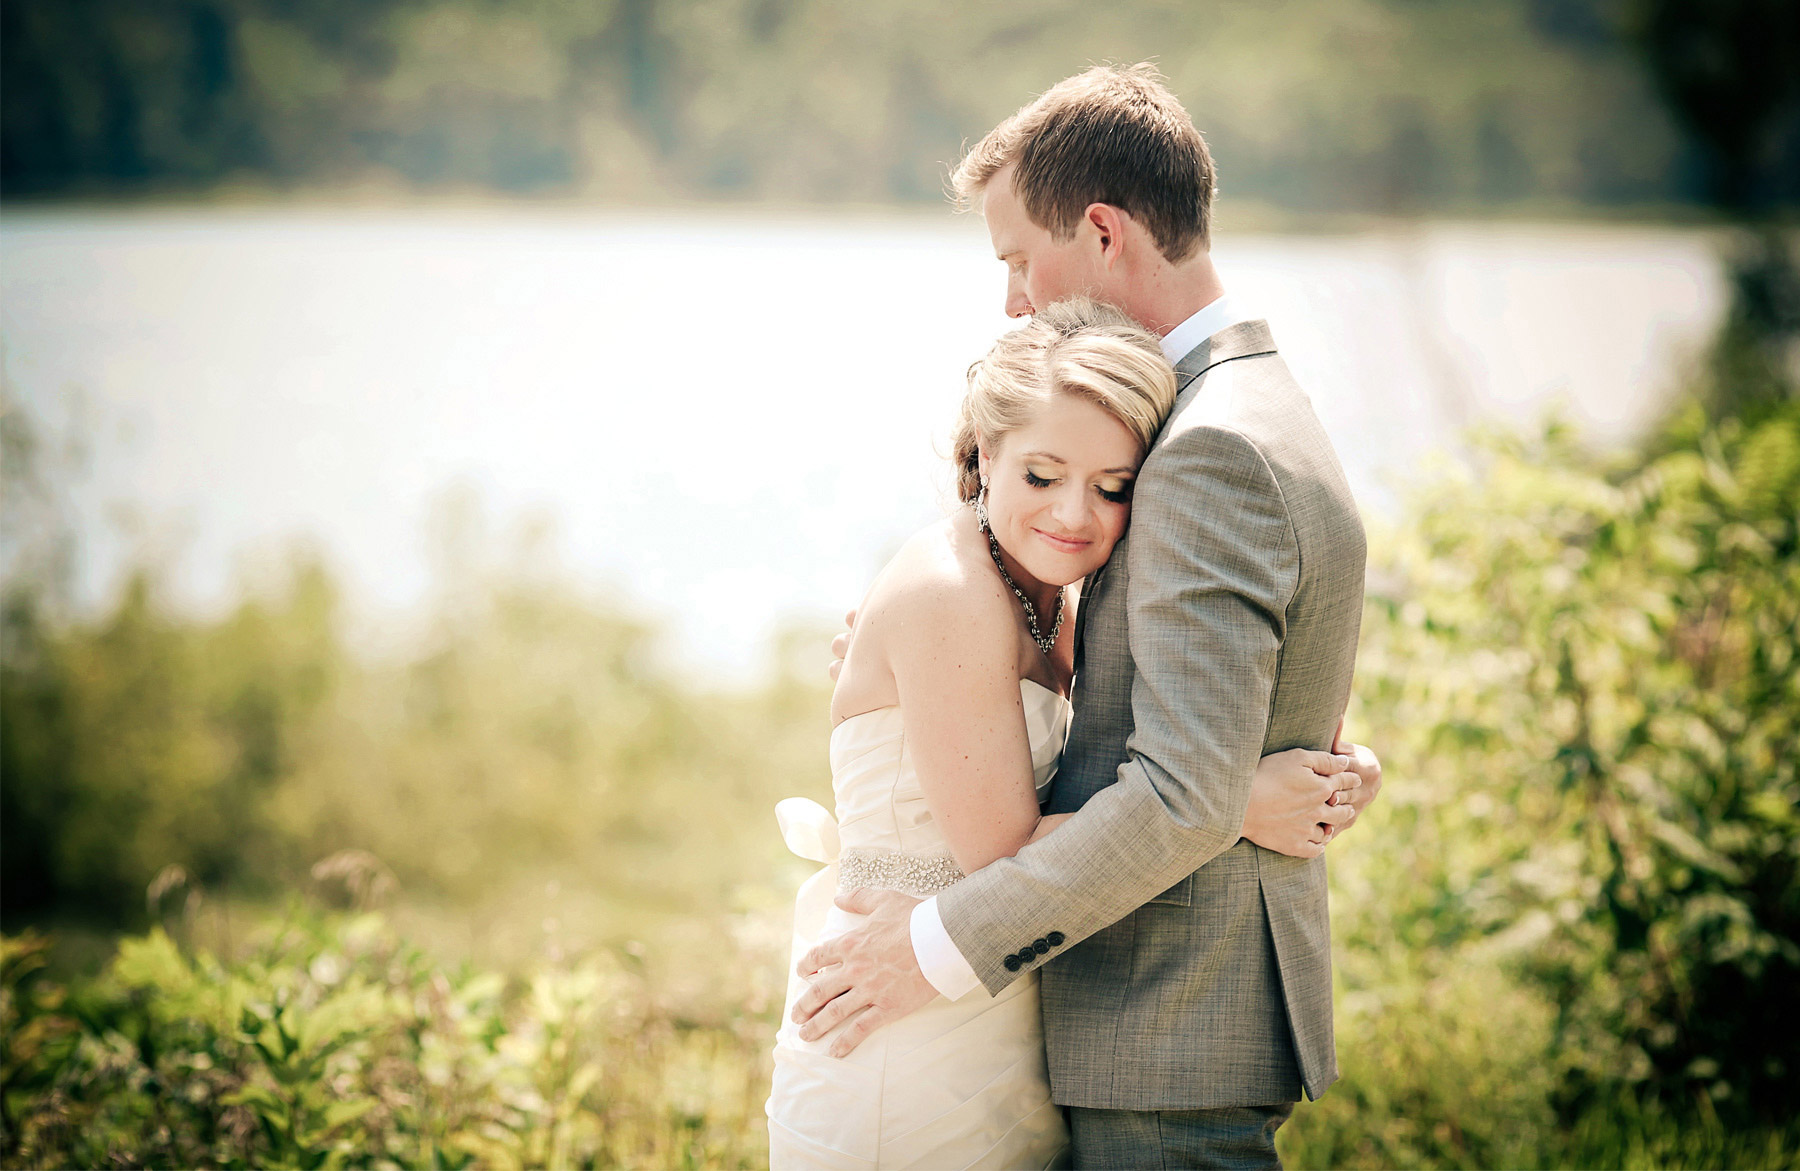 02-Brainerd-Minnesota-Wedding-Photography-by-Vick-Photography-Craguns-Resort-First-Look-Lucy-&-Matt.jpg